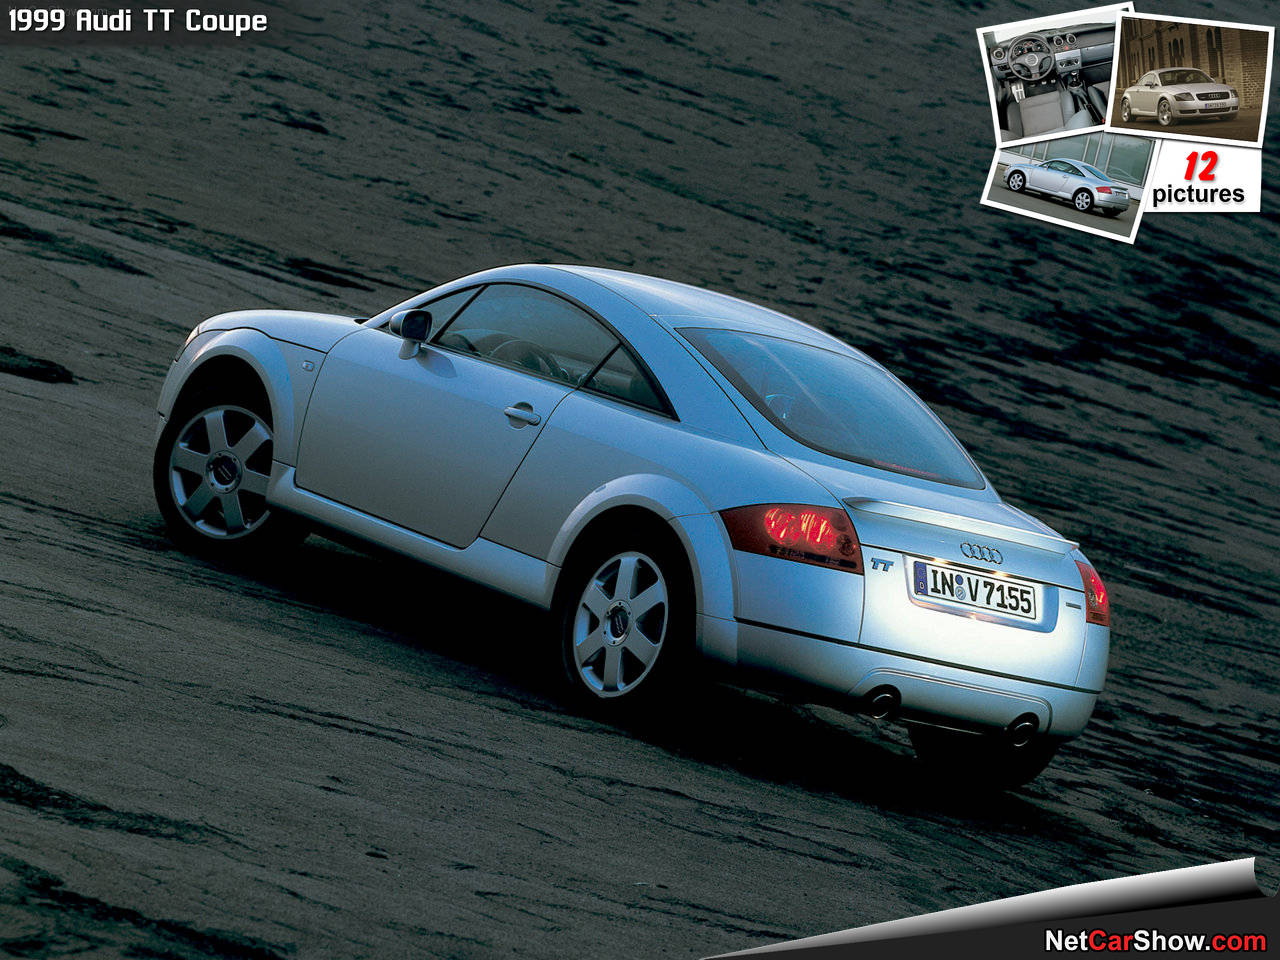 Audi TT Coupe (1999) picture #06, 1280x960